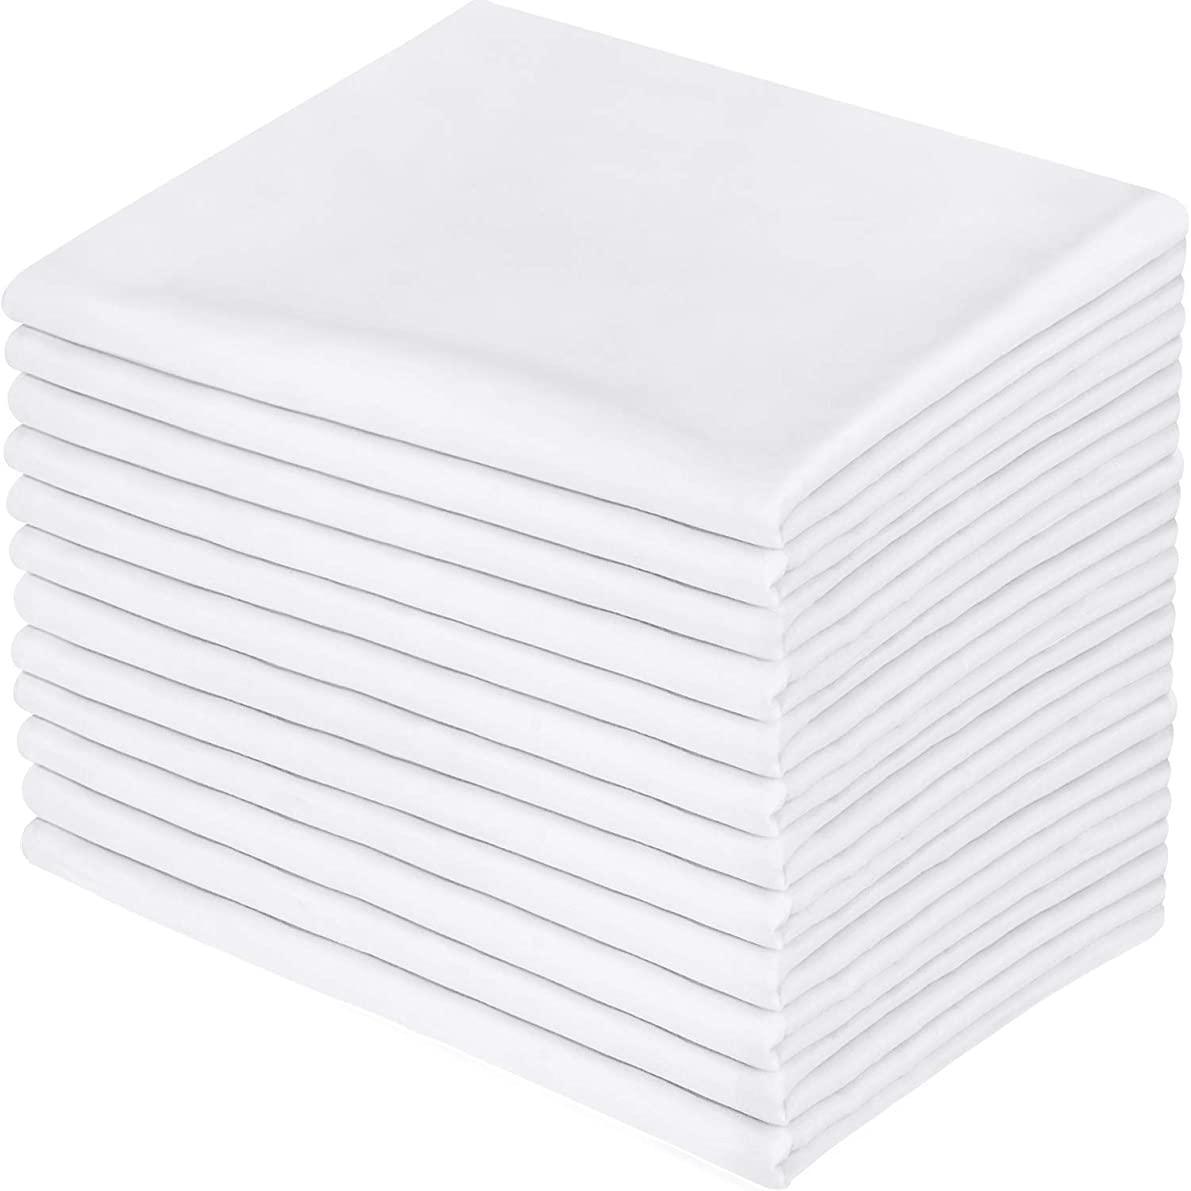 Utopia Bedding 12 Pillowcases - Brushed Microfiber Pillow Cover - Queen White oddzjoo62